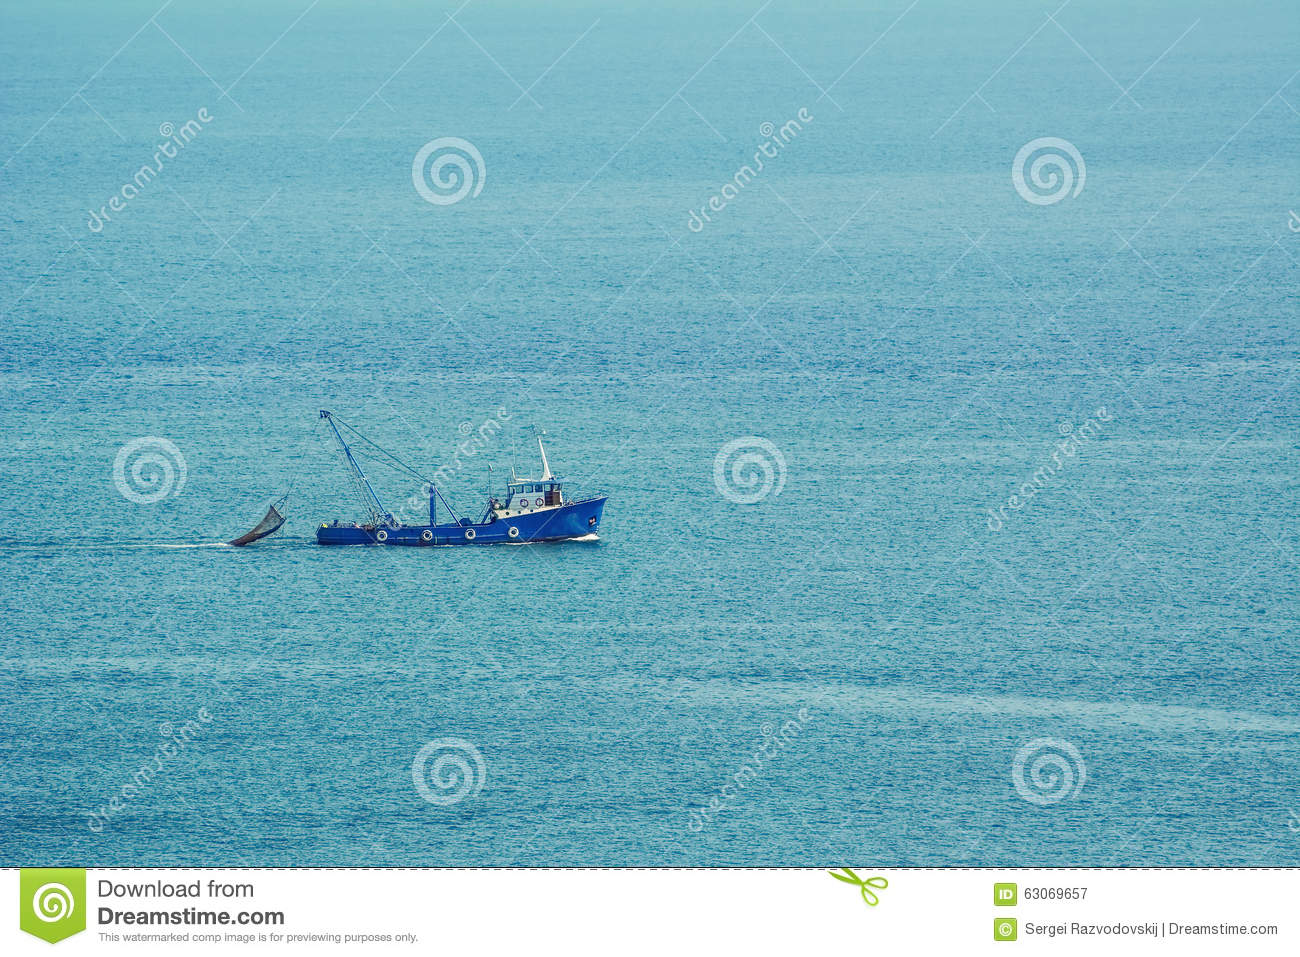 Fishing-boat in the Sea